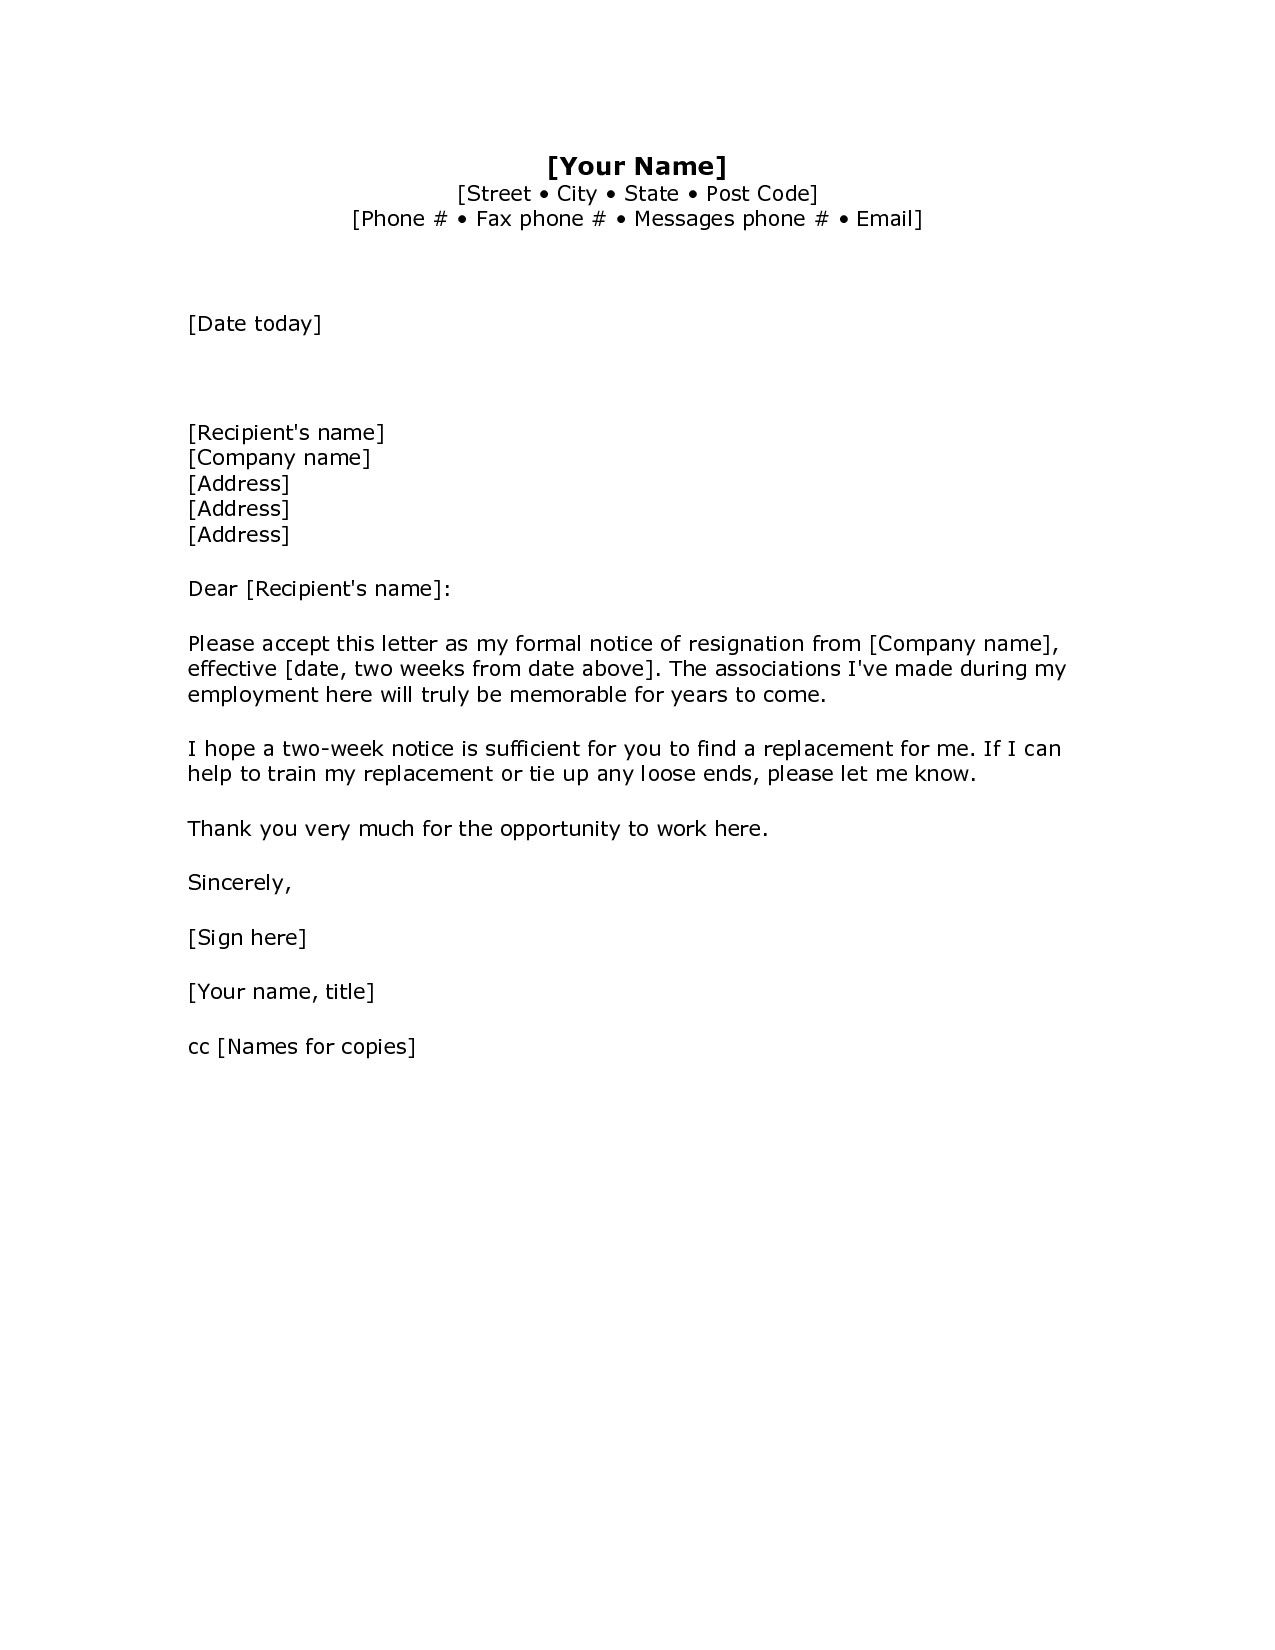 You Can See This Valid English Letter Format Address At Http Creativecommunities Co 2017 11 Resignation Letter Sample Letter Template Word Resignation Letter 2 weeks notice letter sample retail